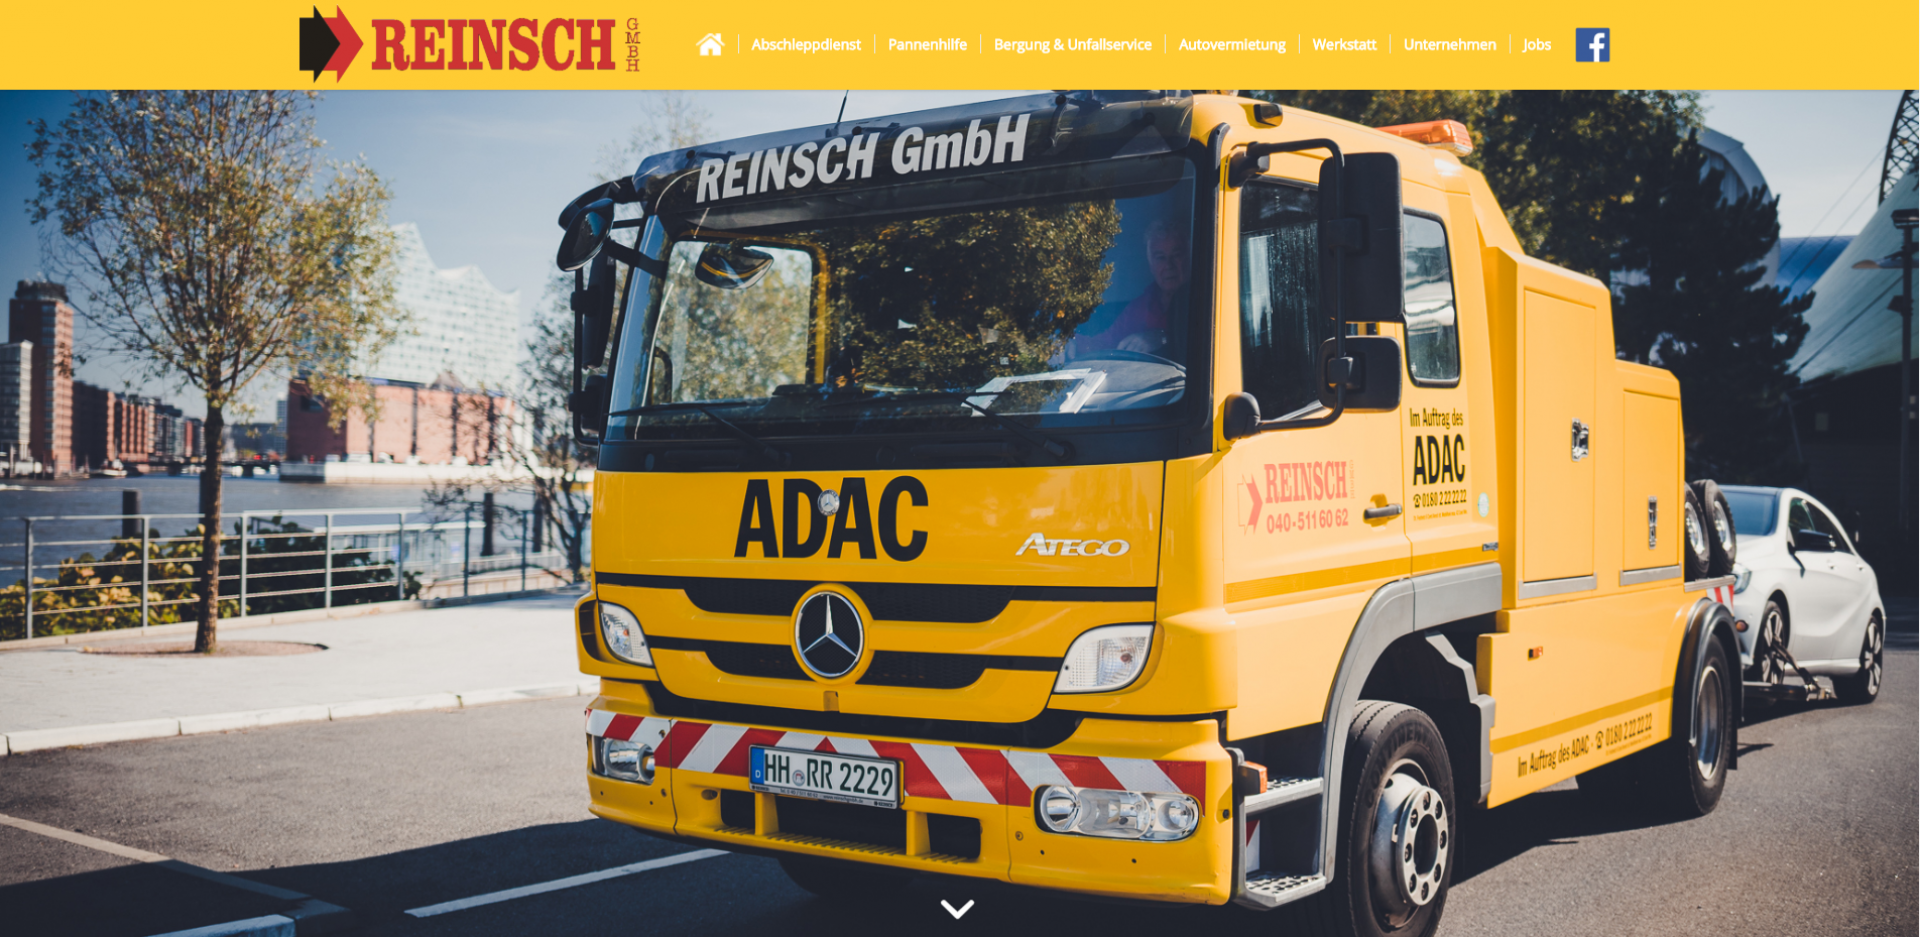 reinsch website